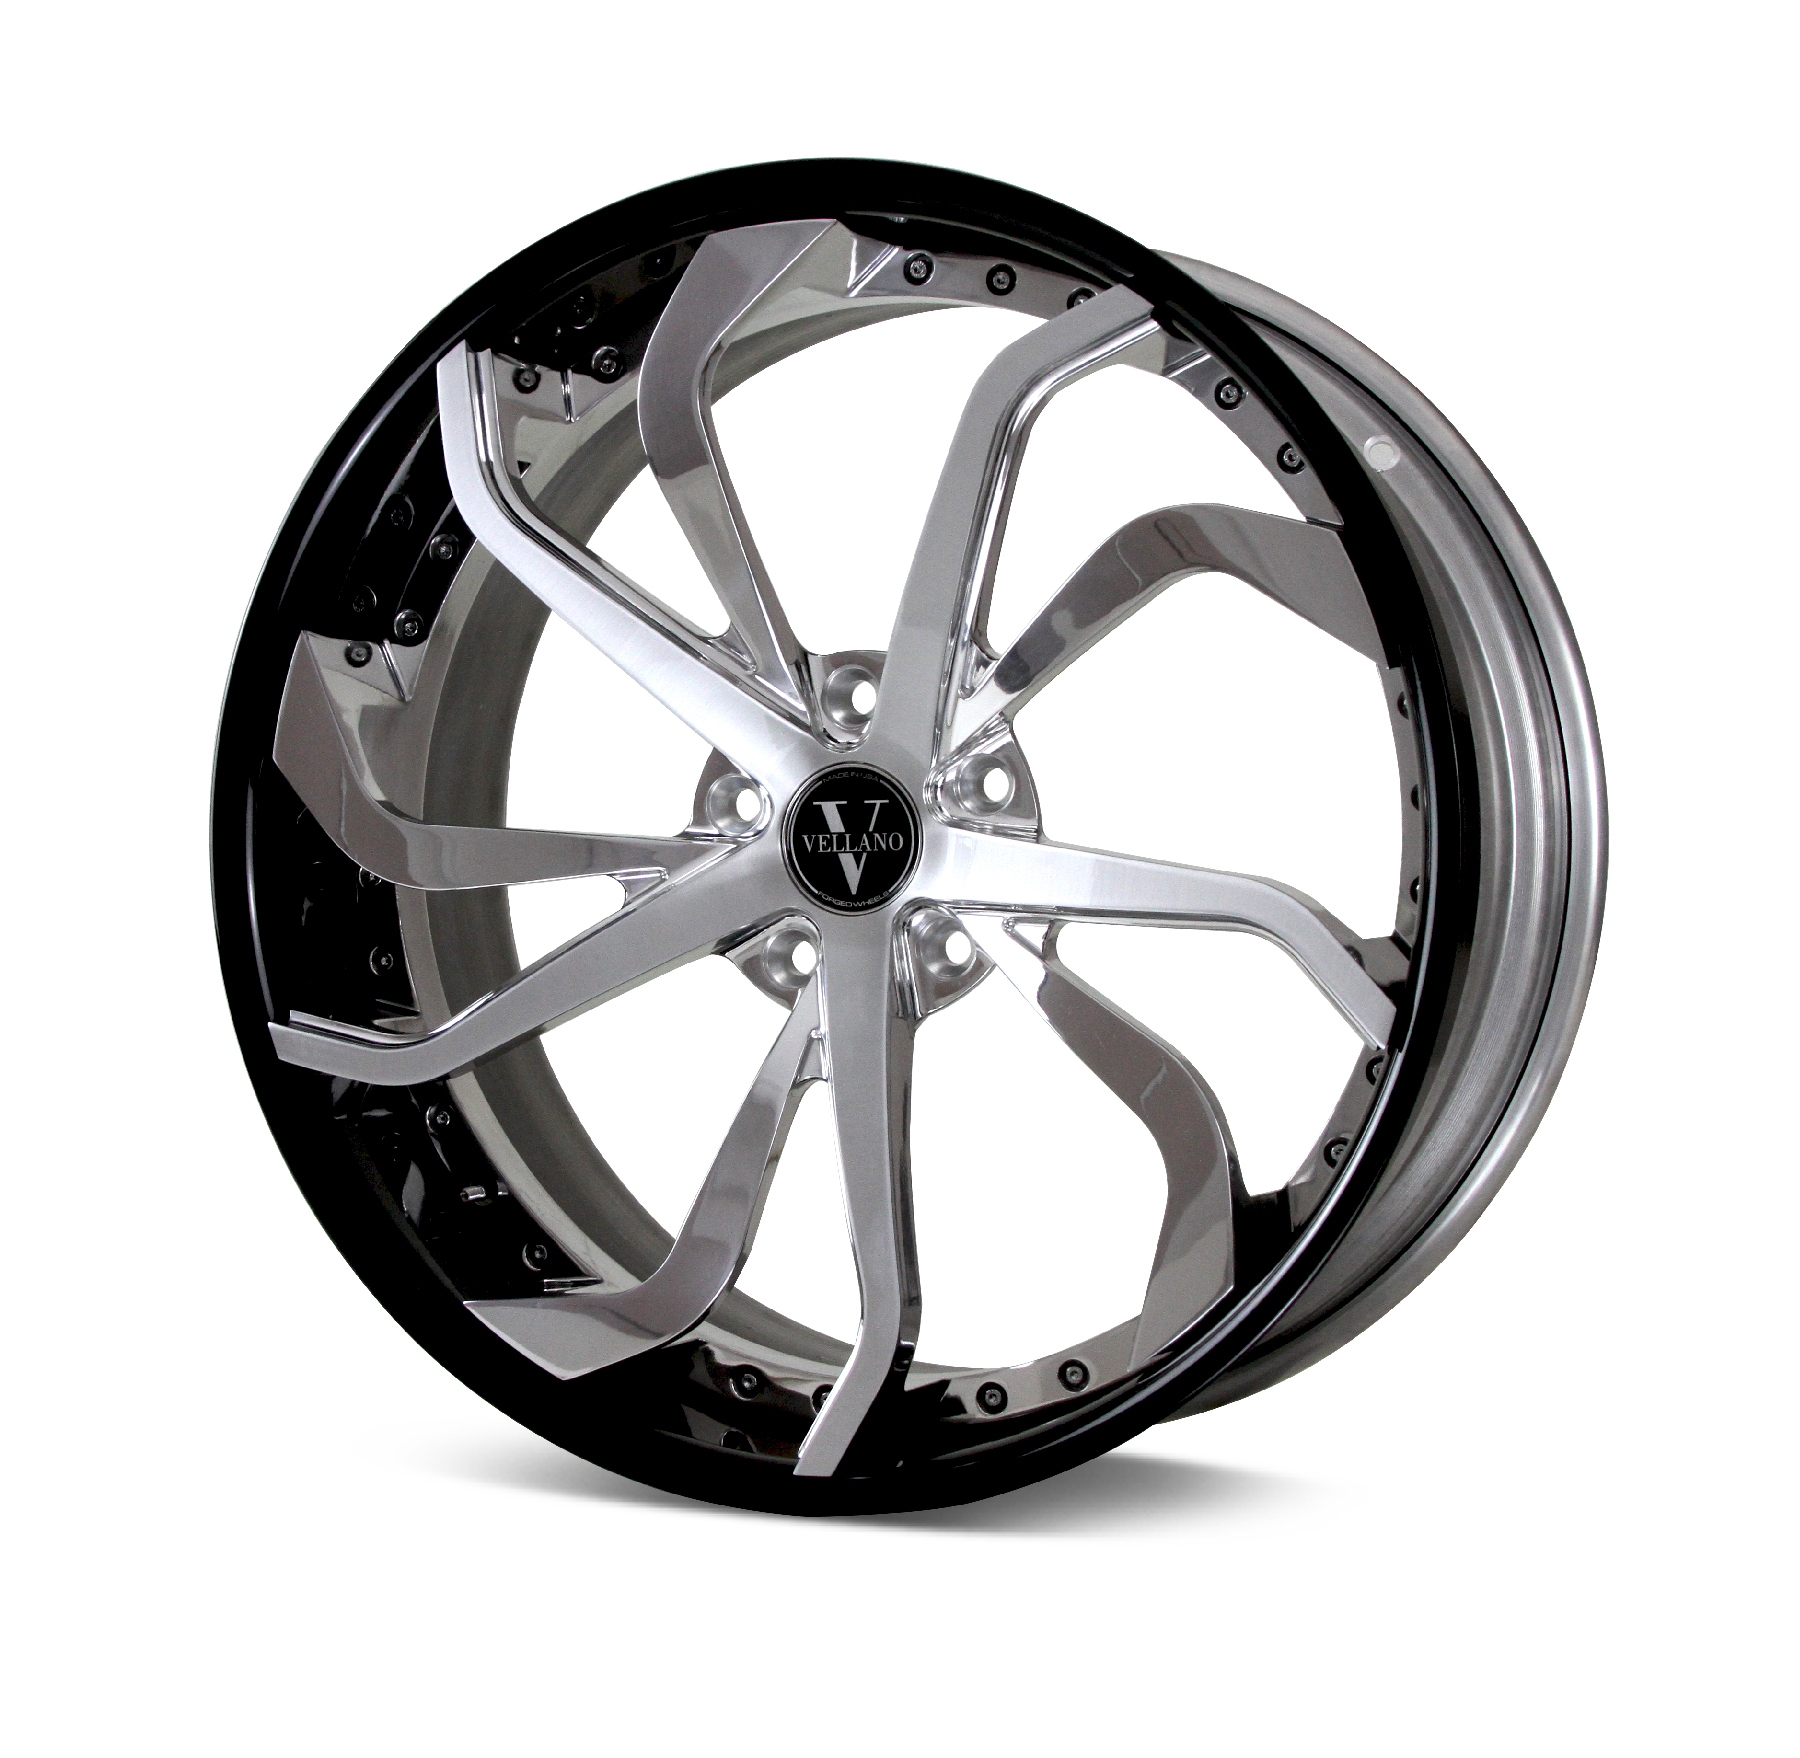 Vellano VCY forged wheels